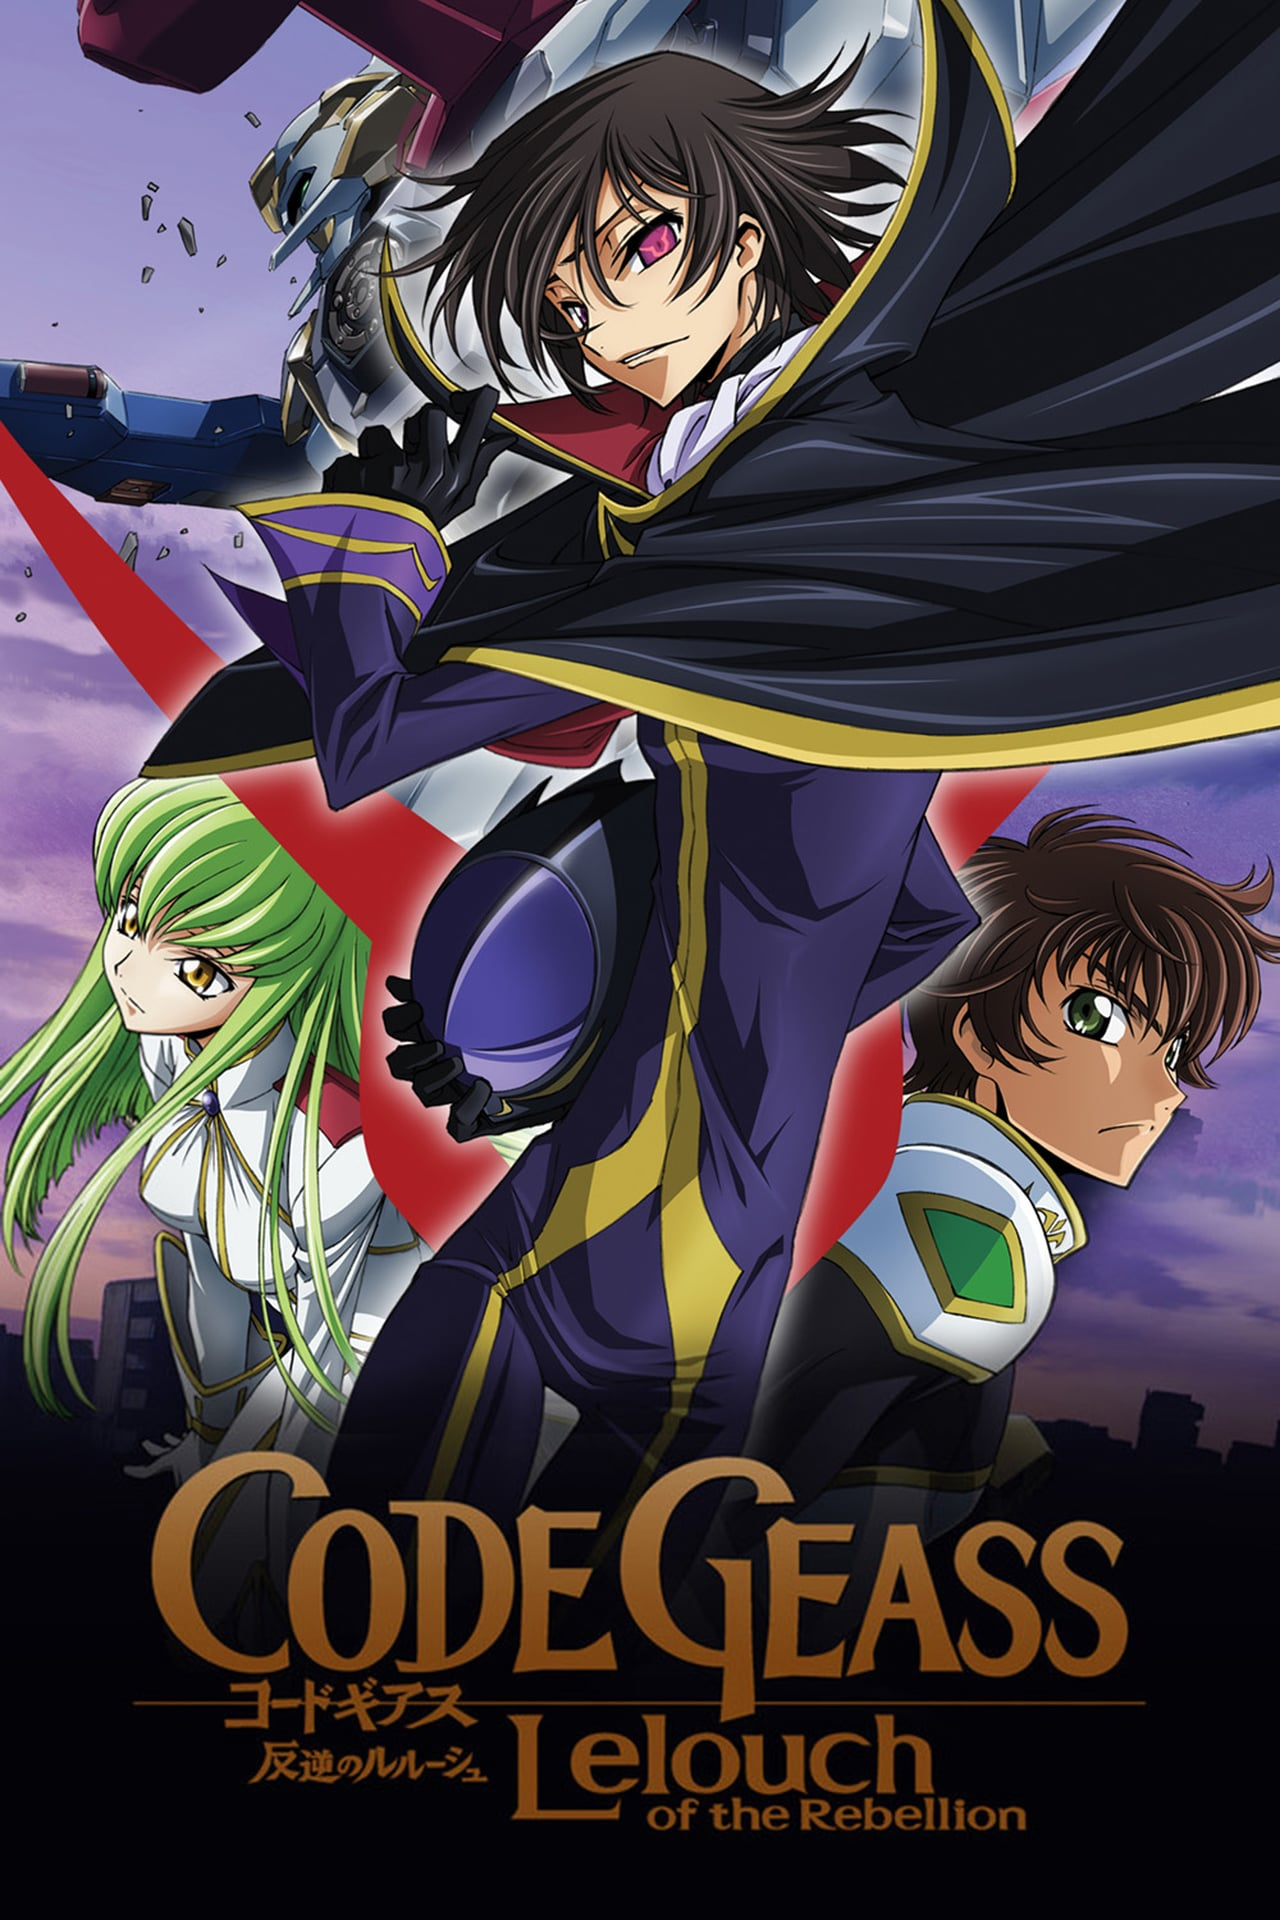 Code Geass: Lelouch of the Rebellion (2006)